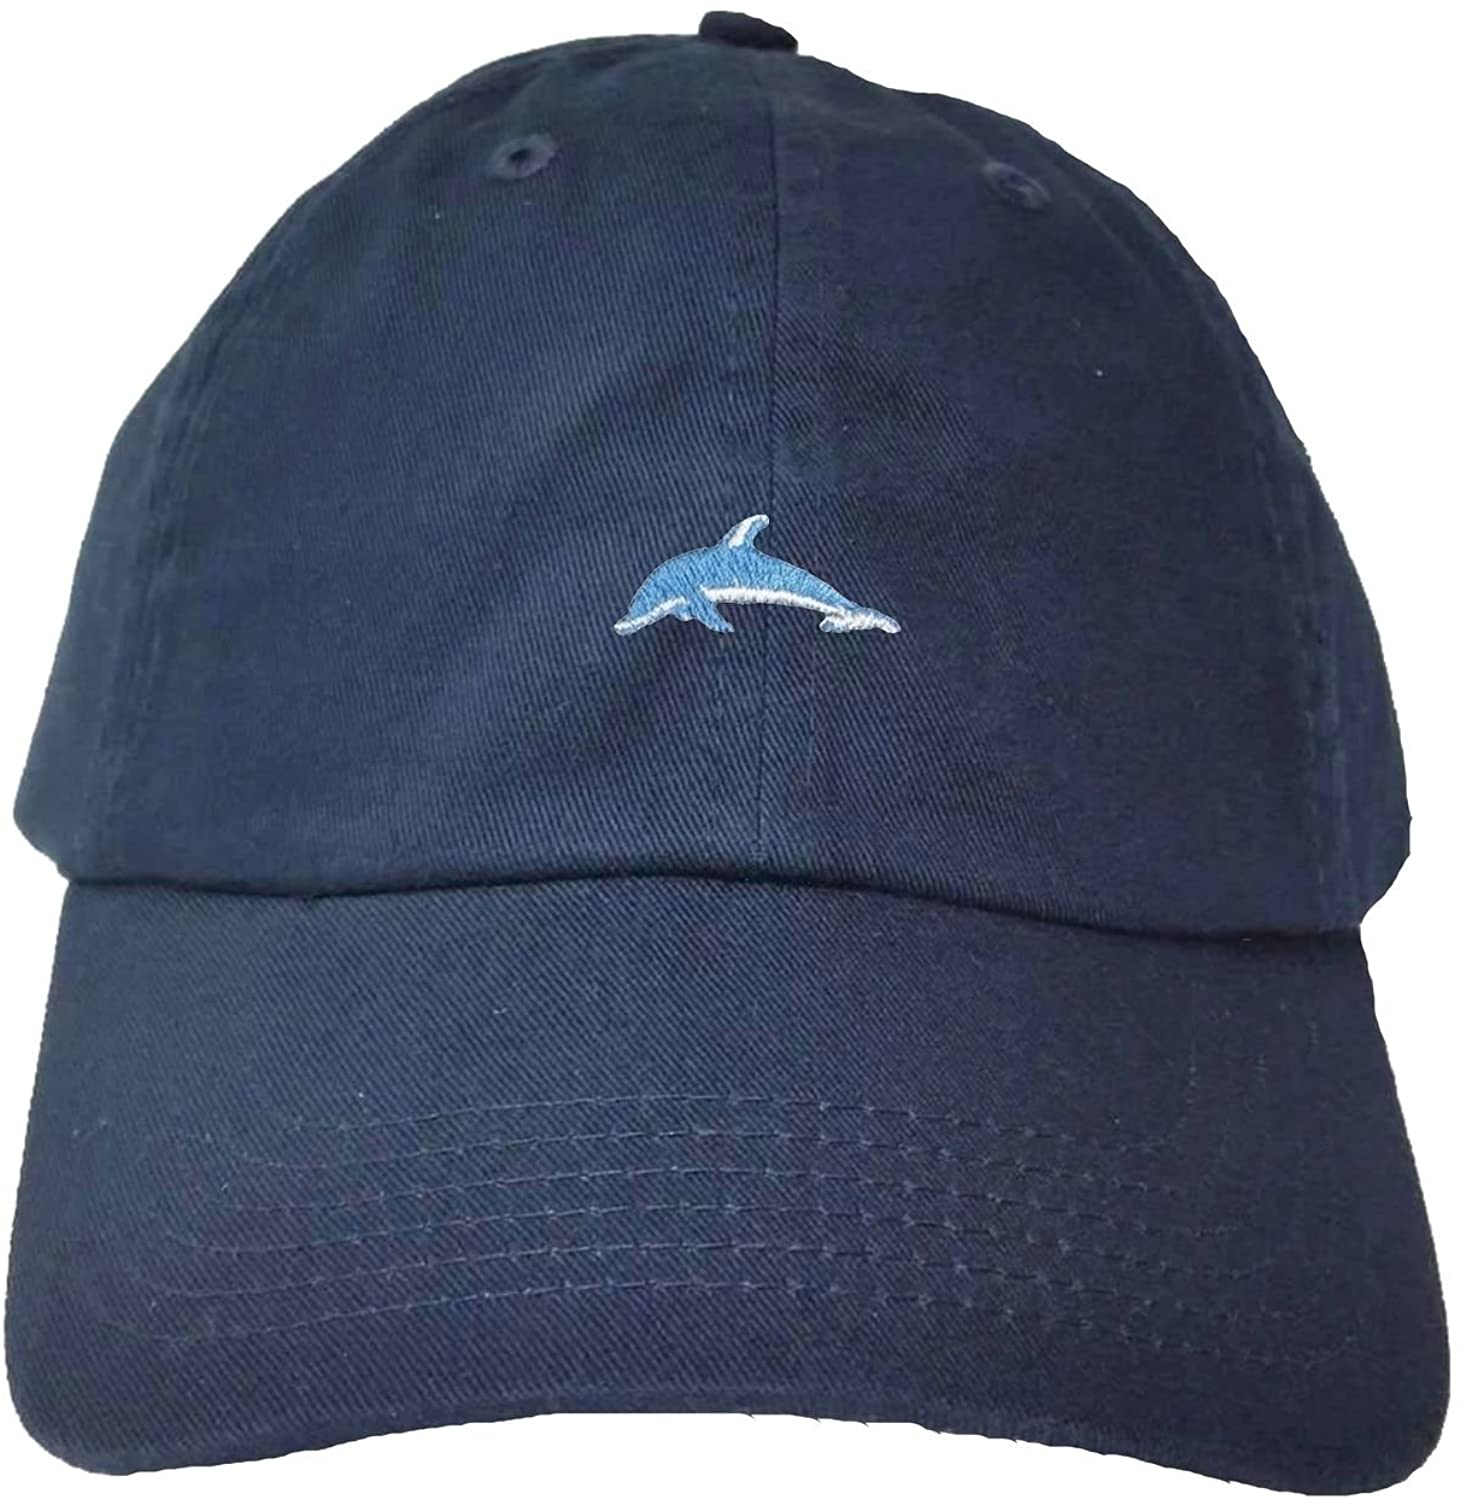 Adult Dolphin Embroidered Dad Hat